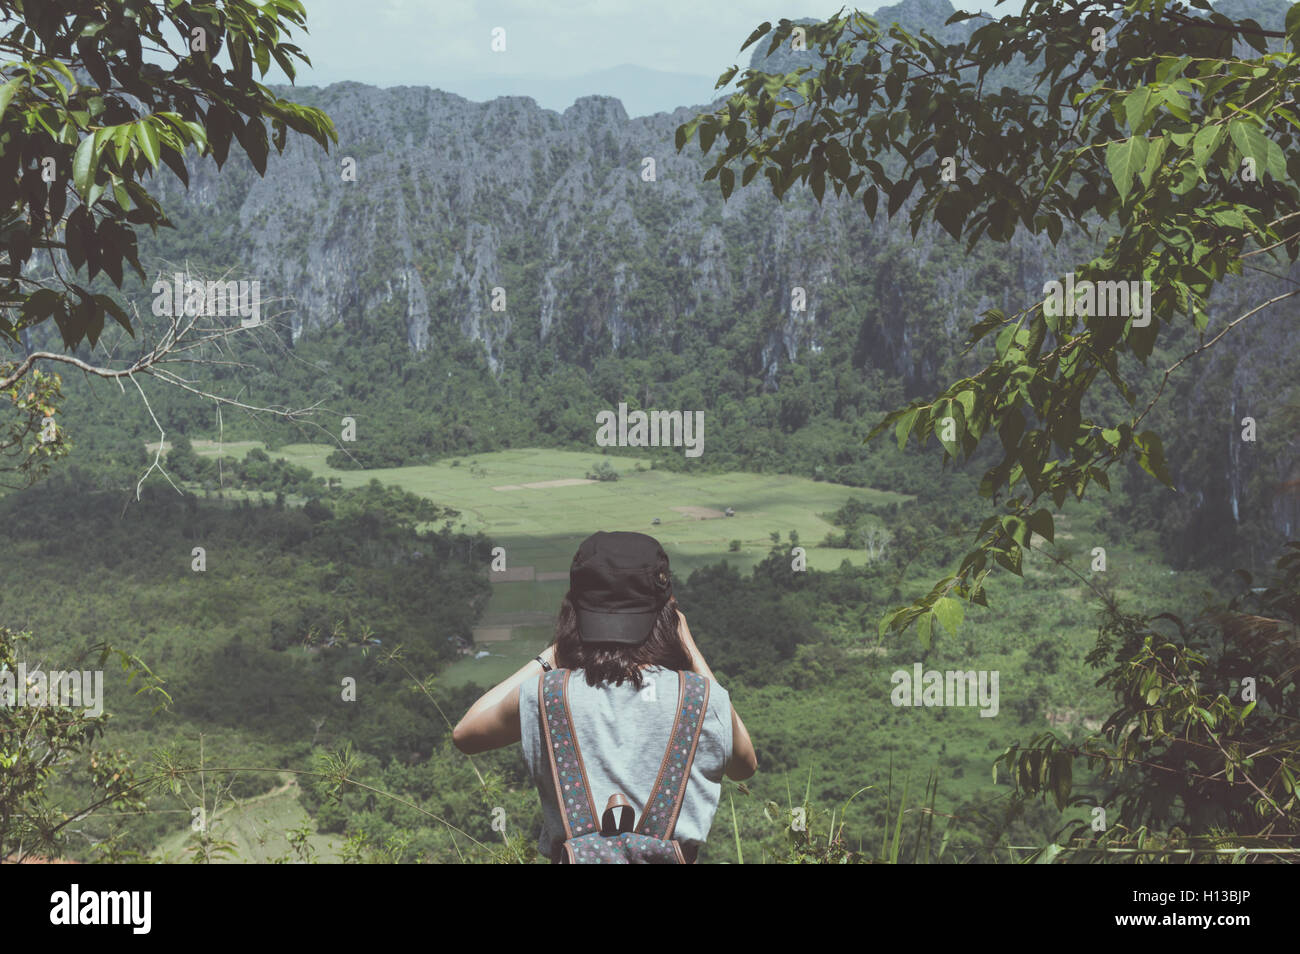 Woman backpacker shoot photo in nature background. - Stock Image